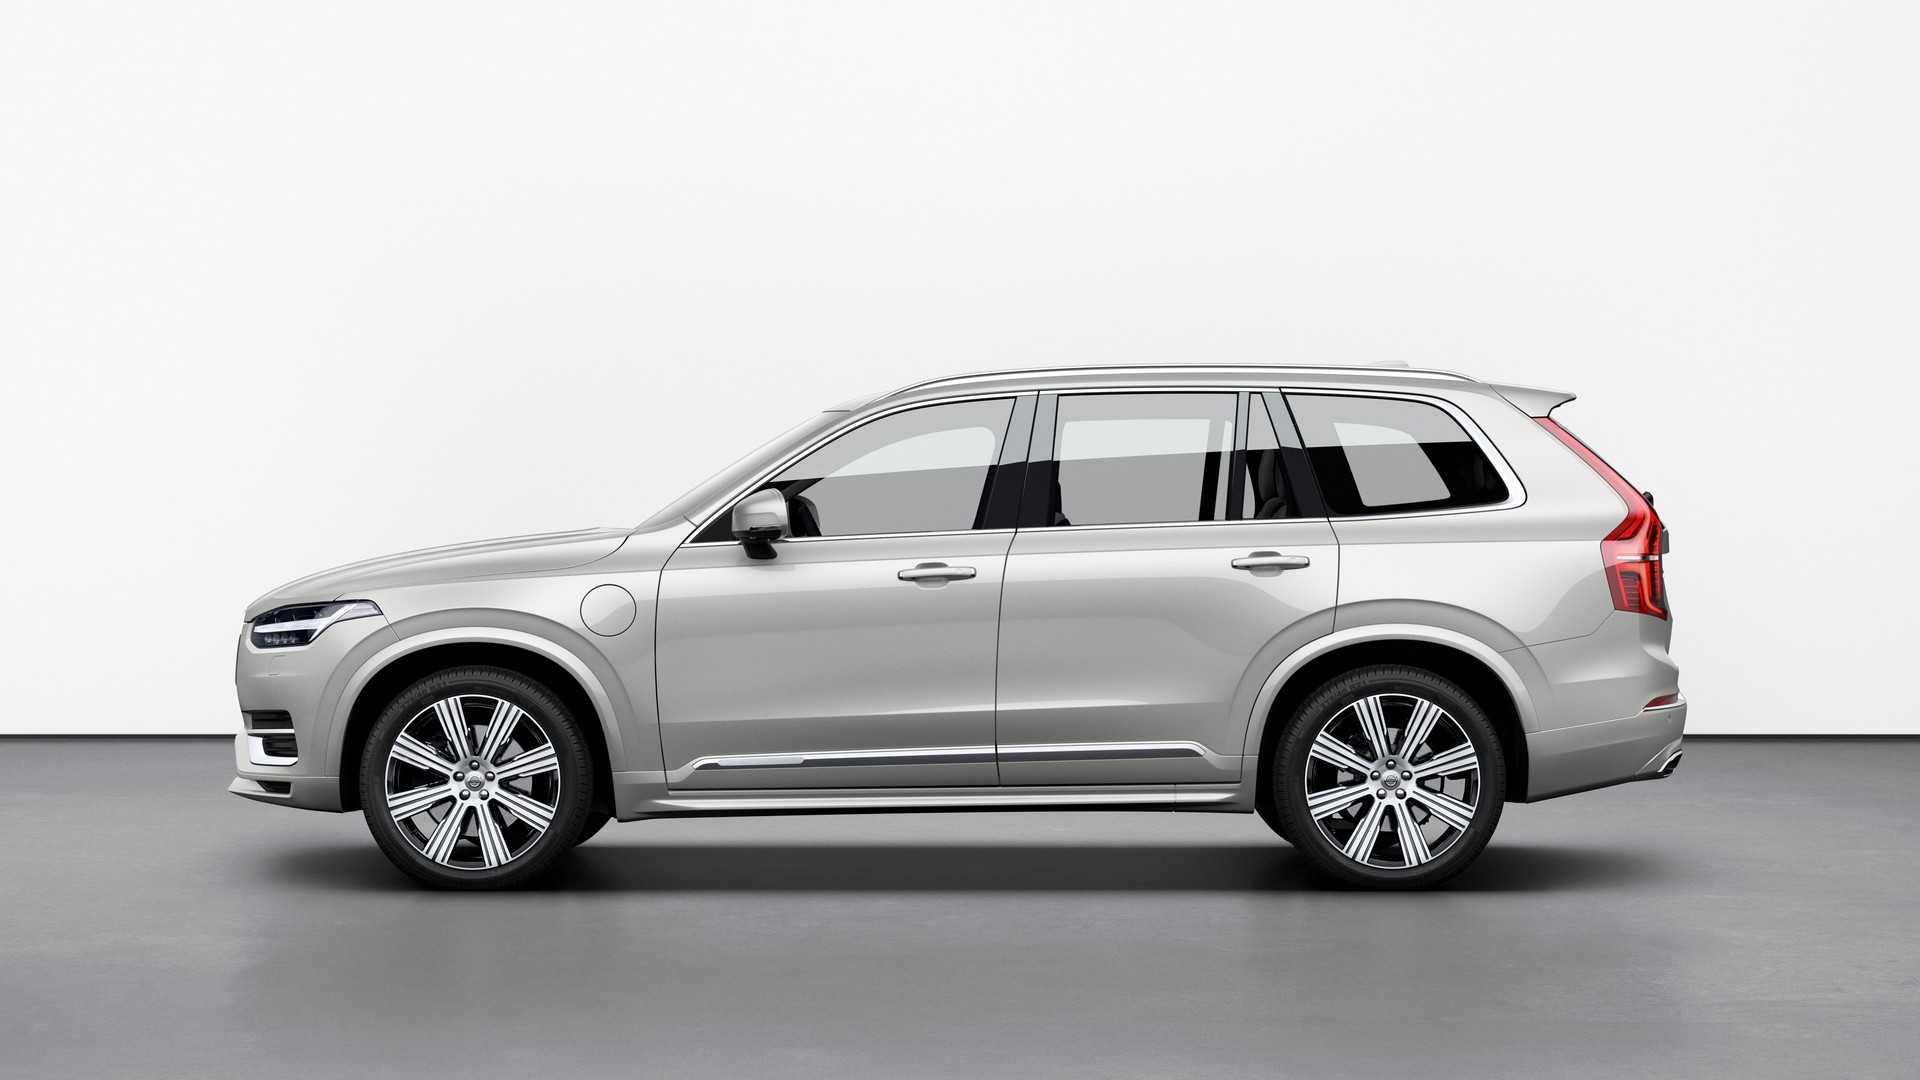 26 New Volvo Xc90 Model Year 2020 Style